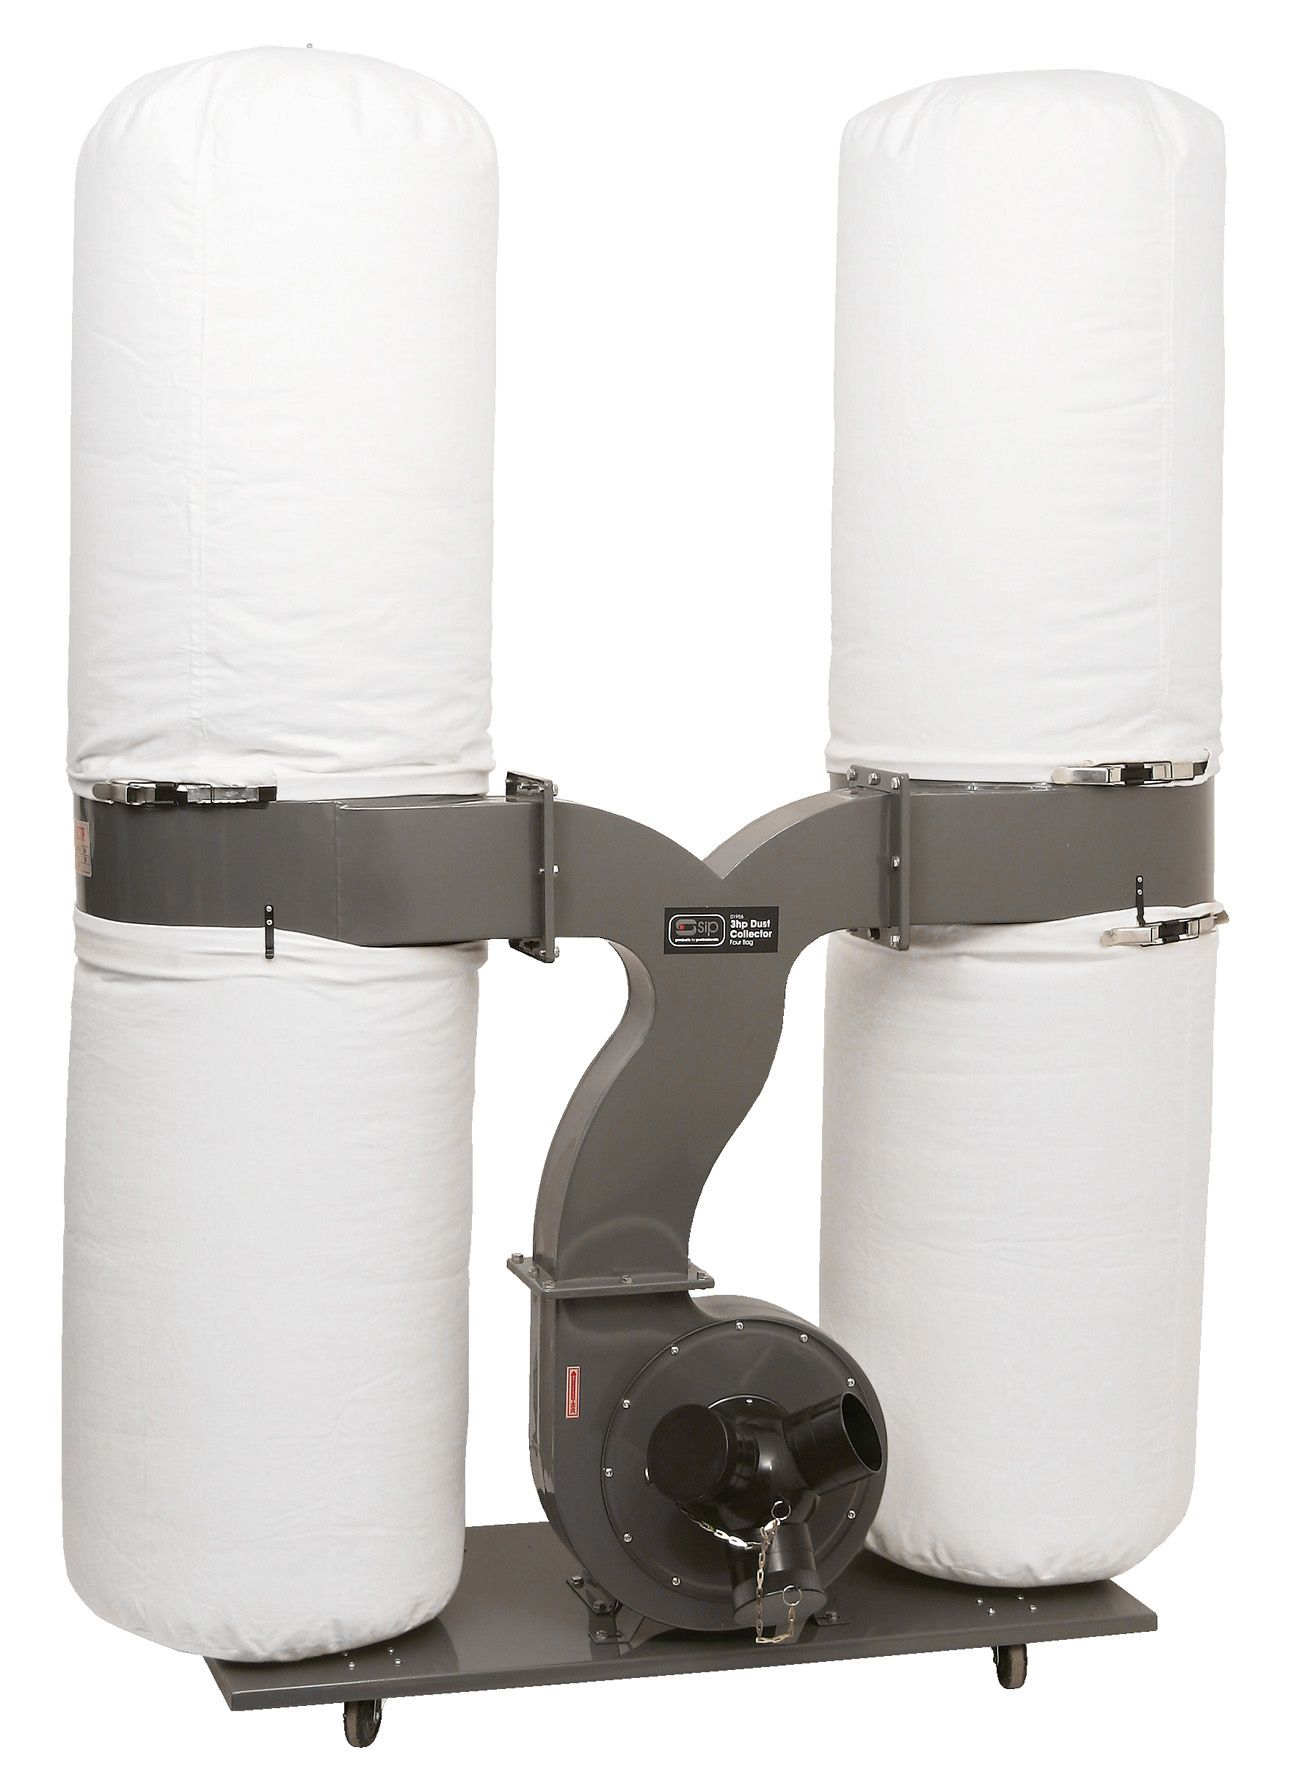 SIP 3HP Double Bag Dust Collector